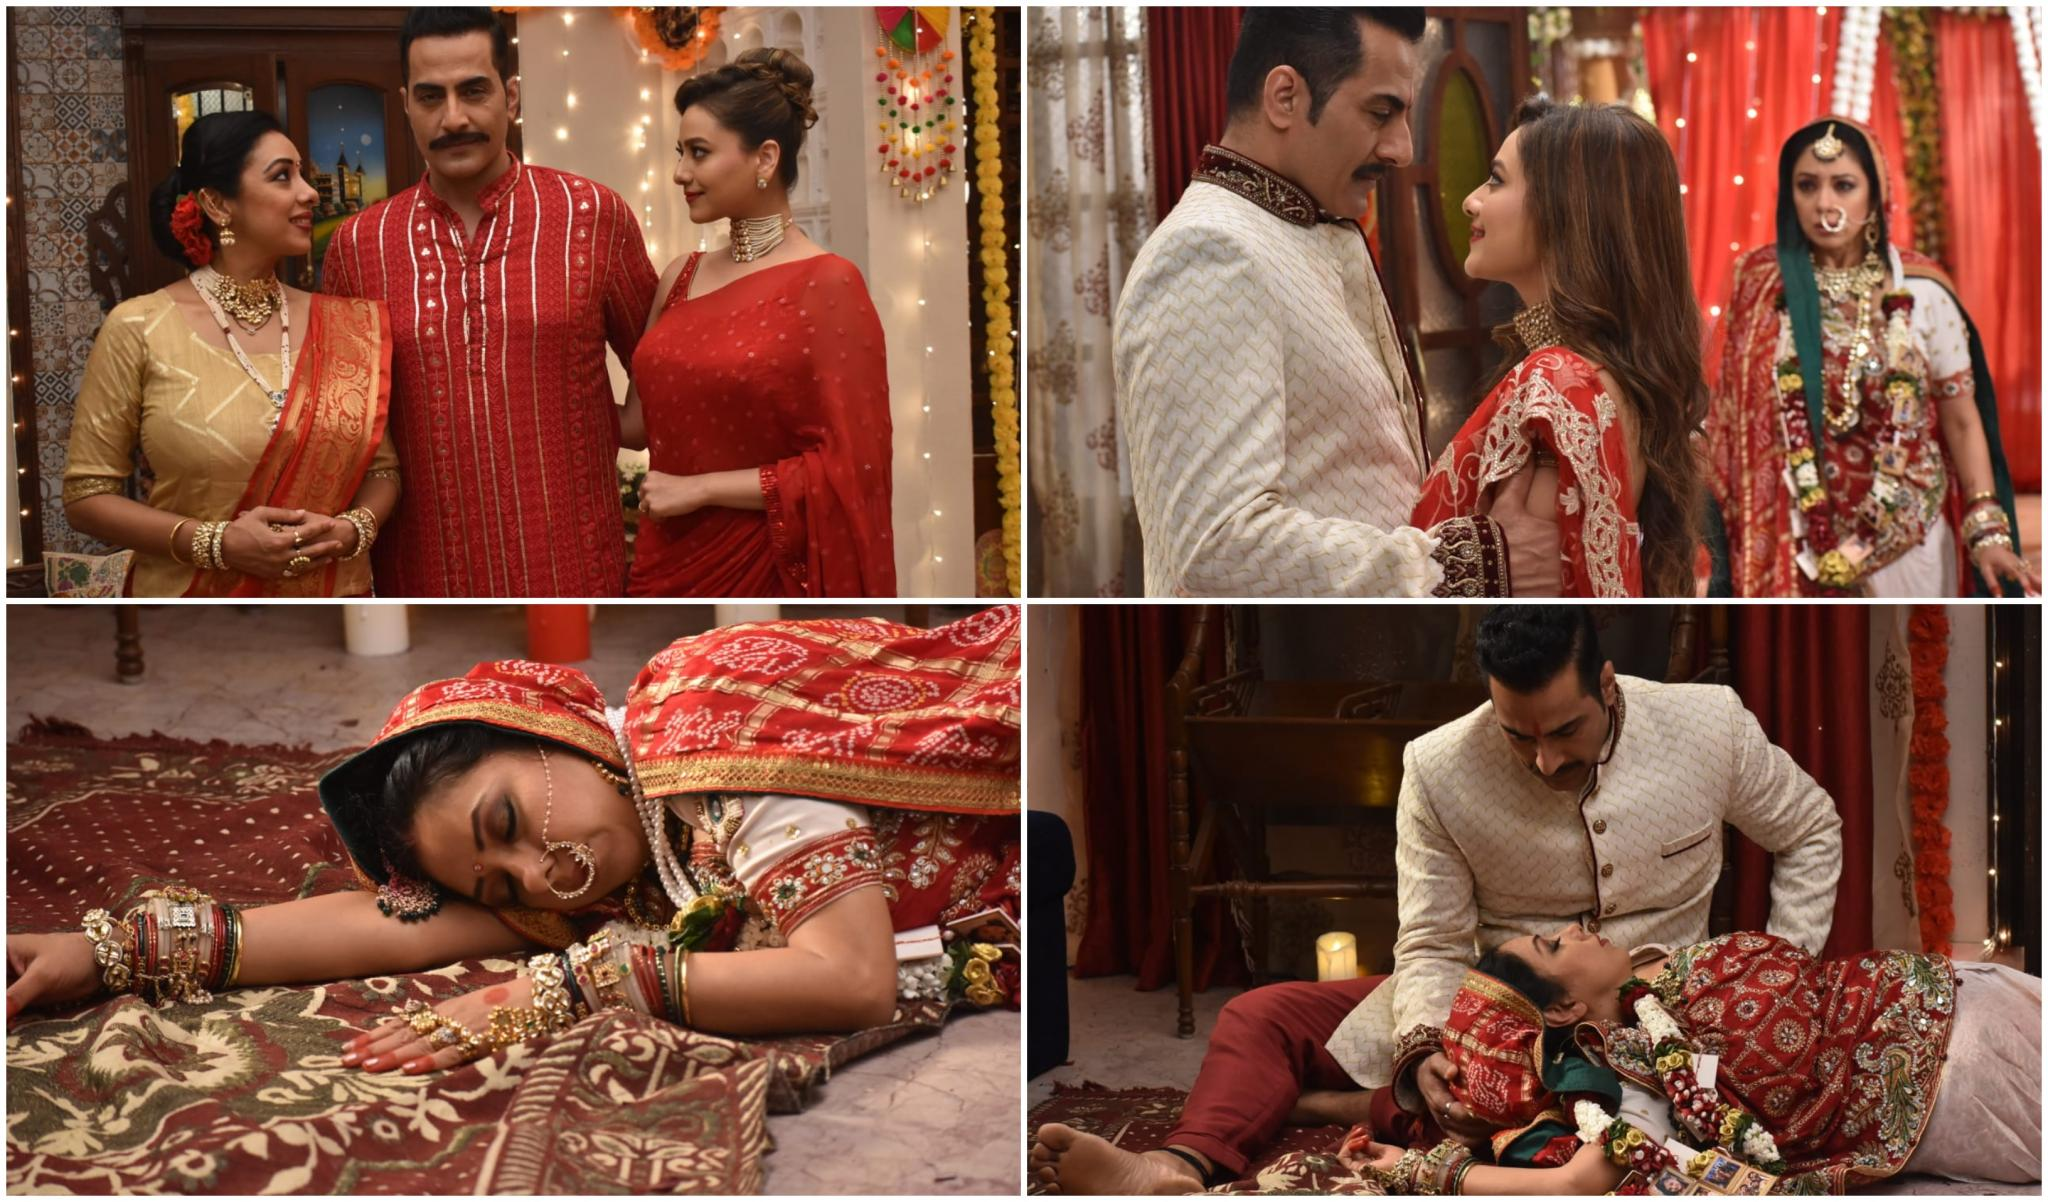 BARC Report: Rupali Ganguly - Sudhanshu Pandey's Anupamaa Tops The TRP List, Takes Over Shraddha Arya - Dheeraj Dhoopar's Kundali Bhagya (View Ratings)